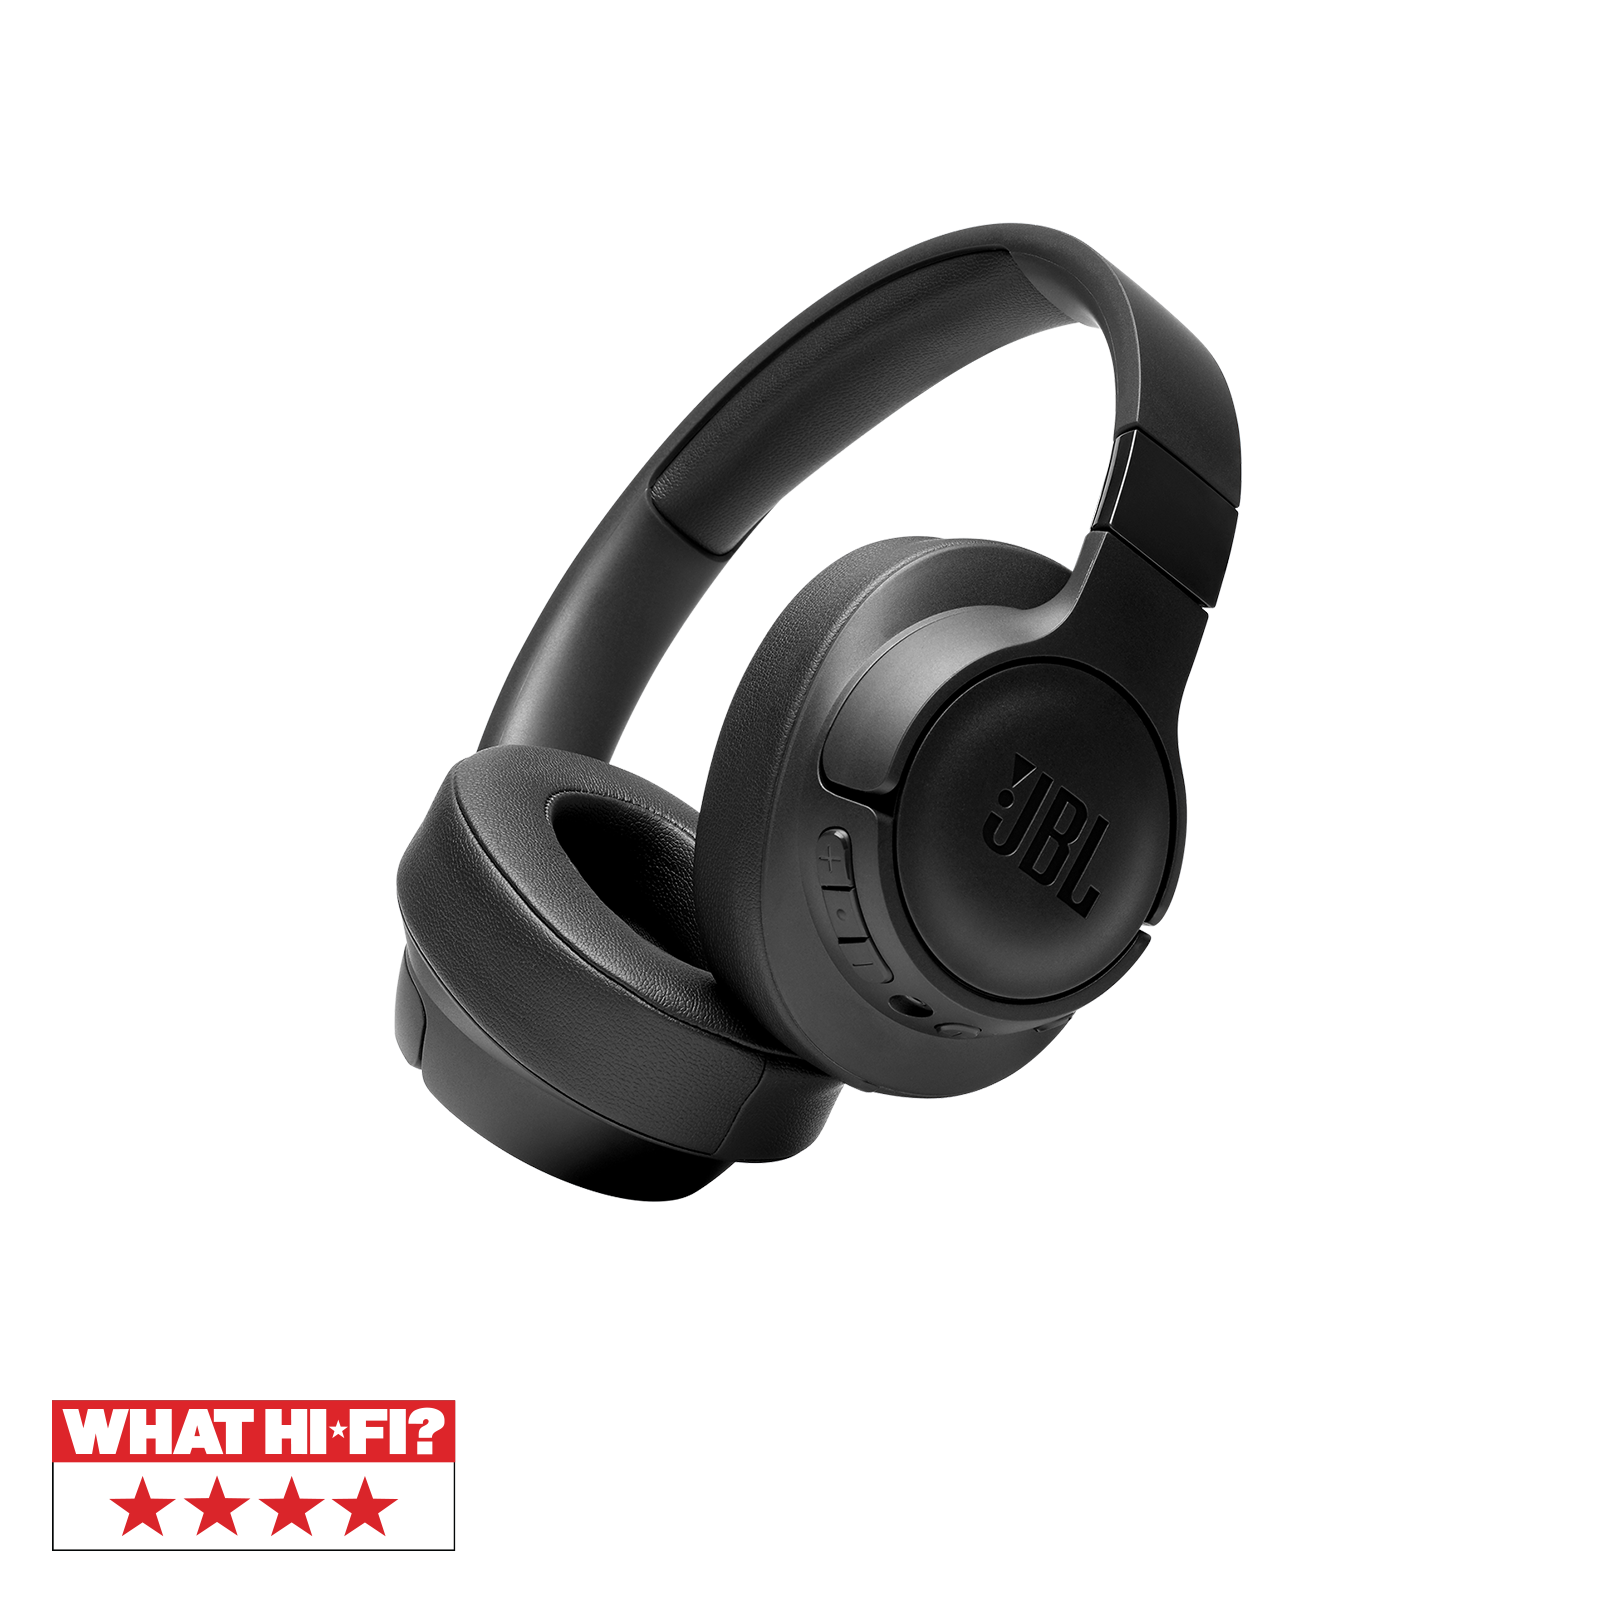 JBL TUNE 750BTNC - Black - Wireless Over-Ear ANC Headphones - Hero